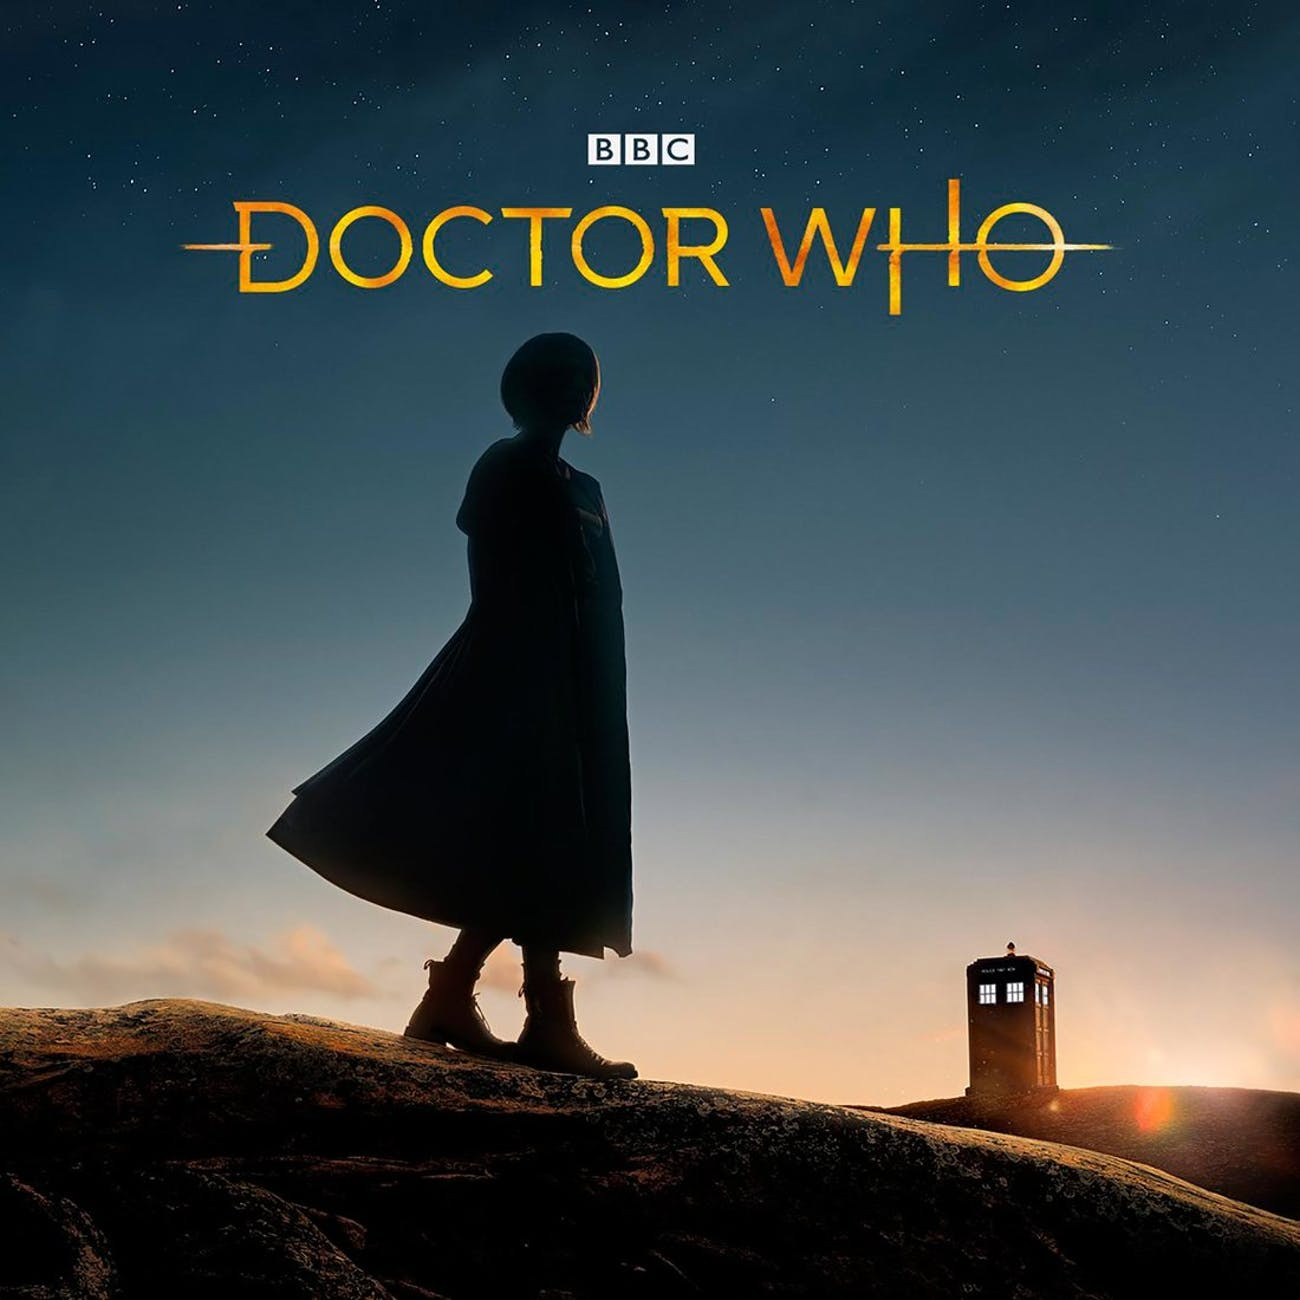 Jodie Whittaker as the 13th Doctor with the new logo for 'Doctor Who'.